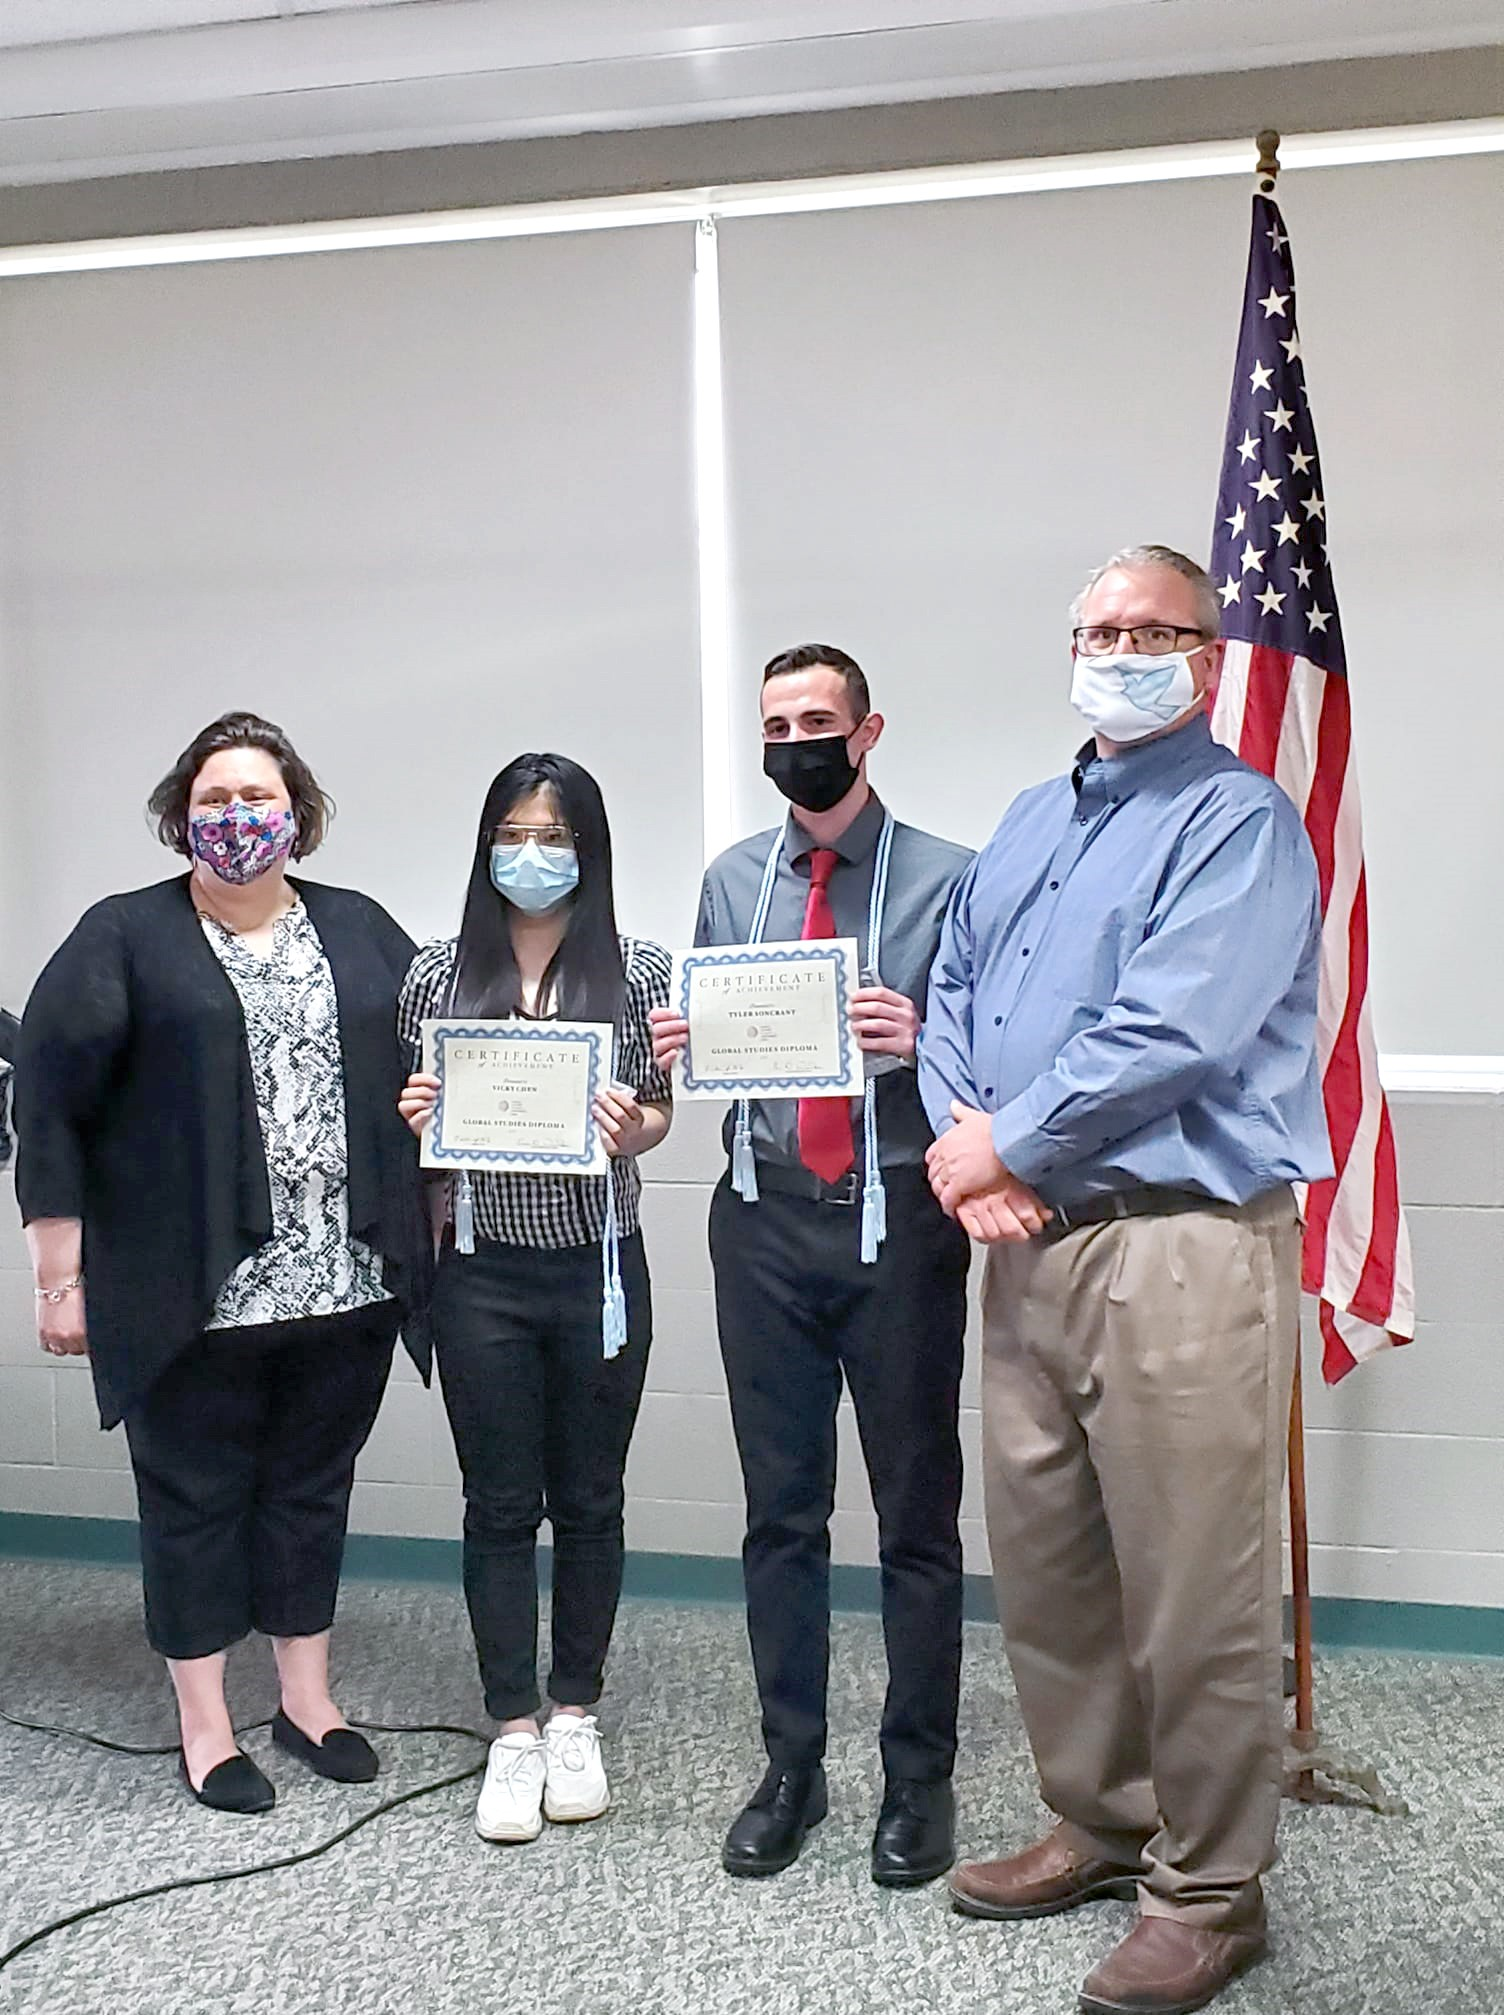 From left: Clay High School Global Studies Diploma advisor Erin Weiker; Clay Global Studies Diploma recipients Vicky Chen and Tyler Soncrant and Bill Hilt, President at World Affairs Council of Northwest Ohio. (Submitted photo by Val Virag)